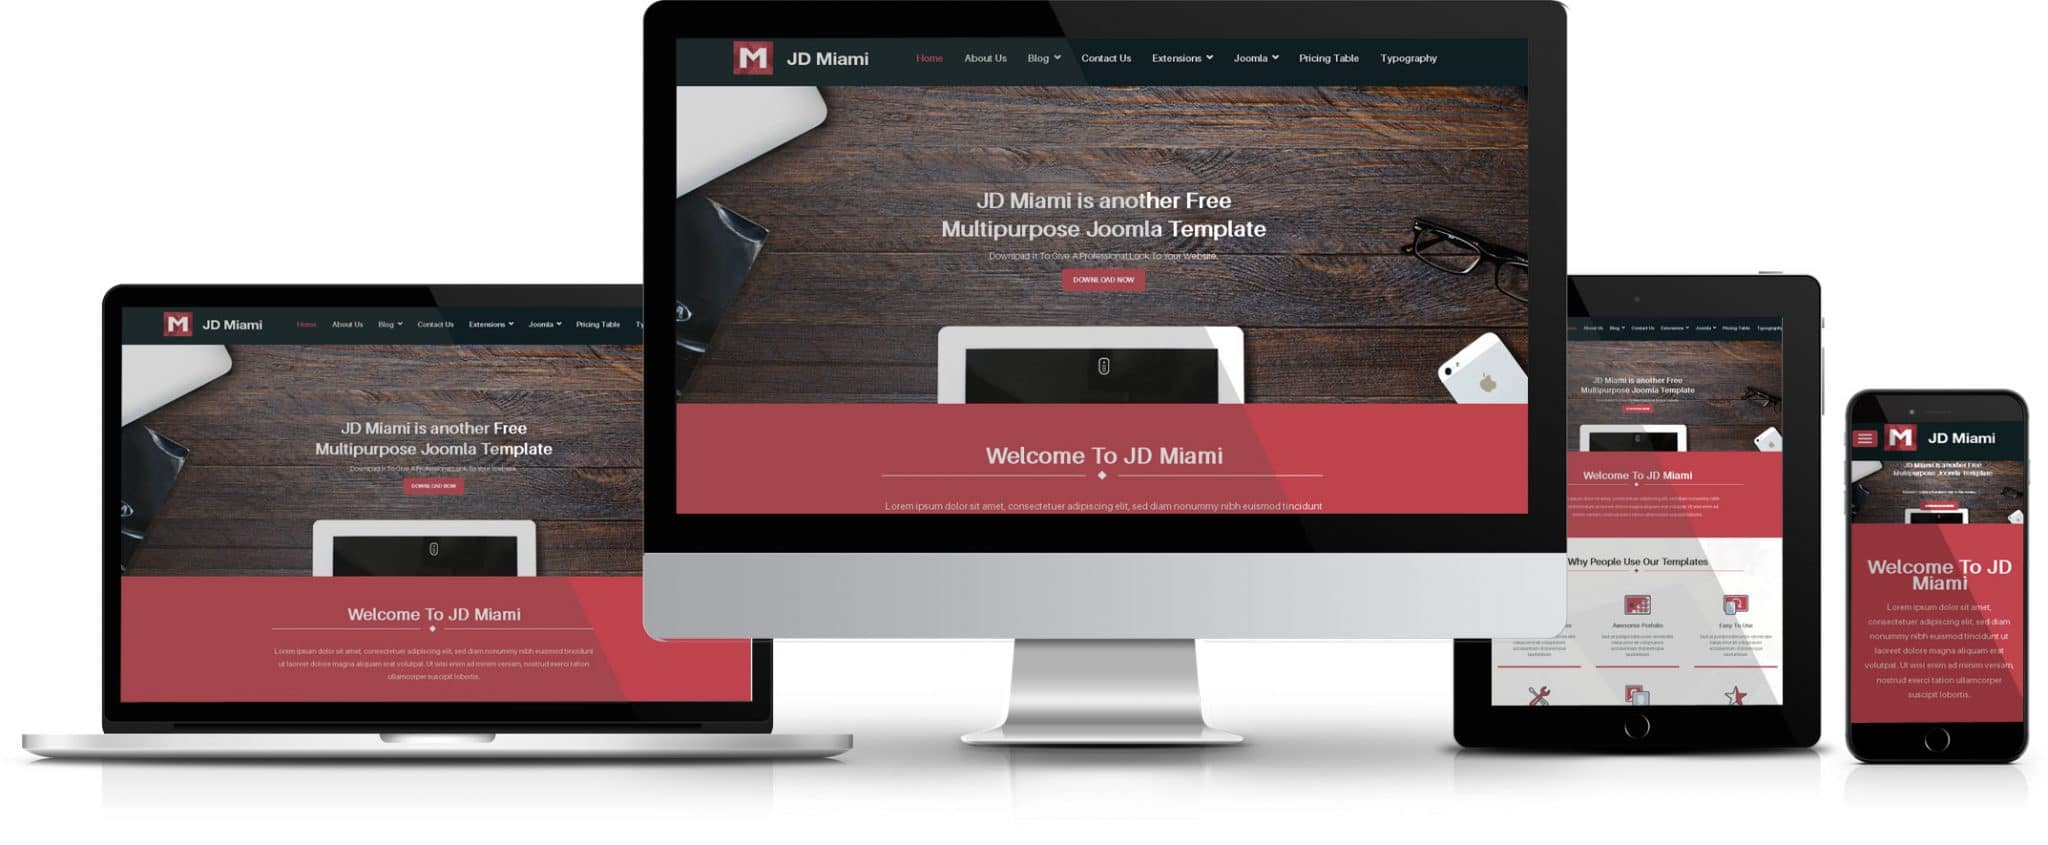 JD Miami - Joomla 3.6.4 Template